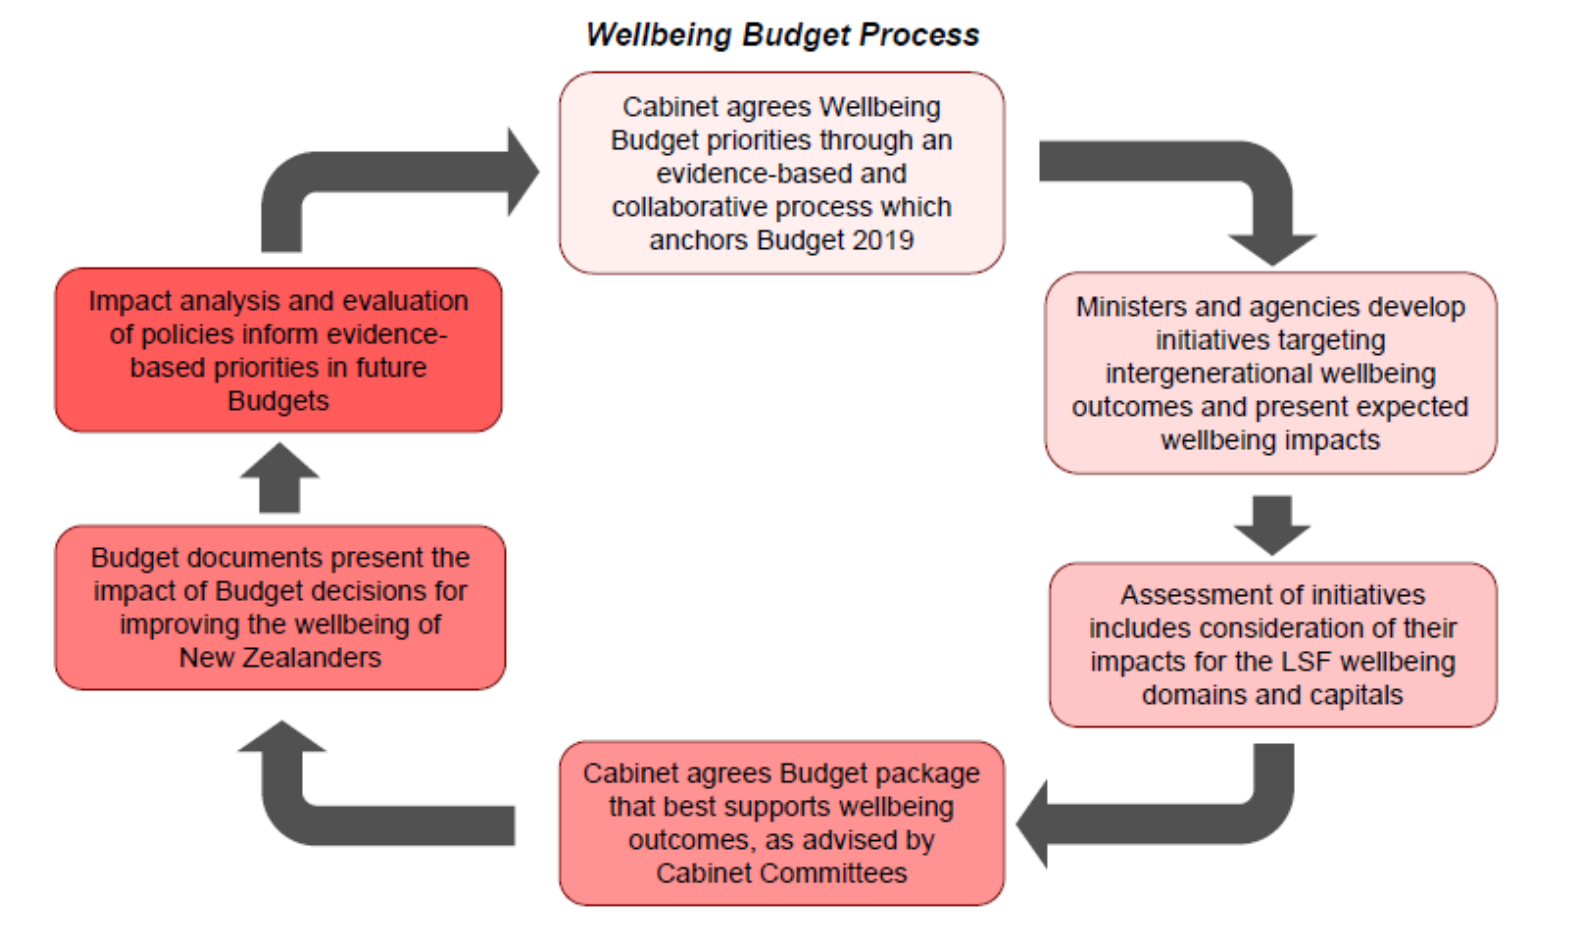 Dave Watson: Rethinking how to deliver budgets